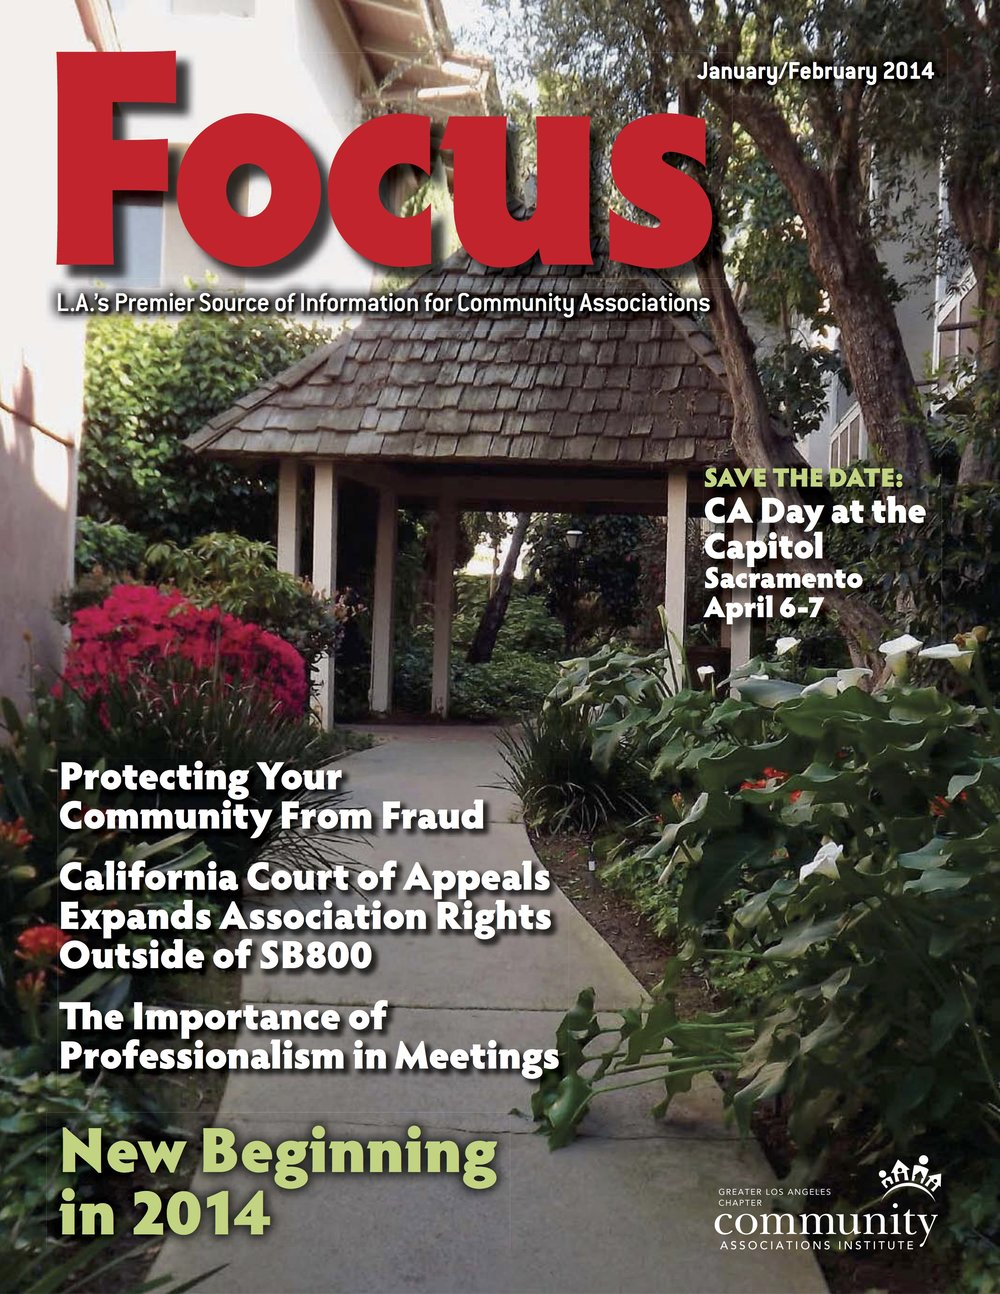 CAI Focus Magazine - California Court of Appeals Expands Association Rights Outside of SB 800